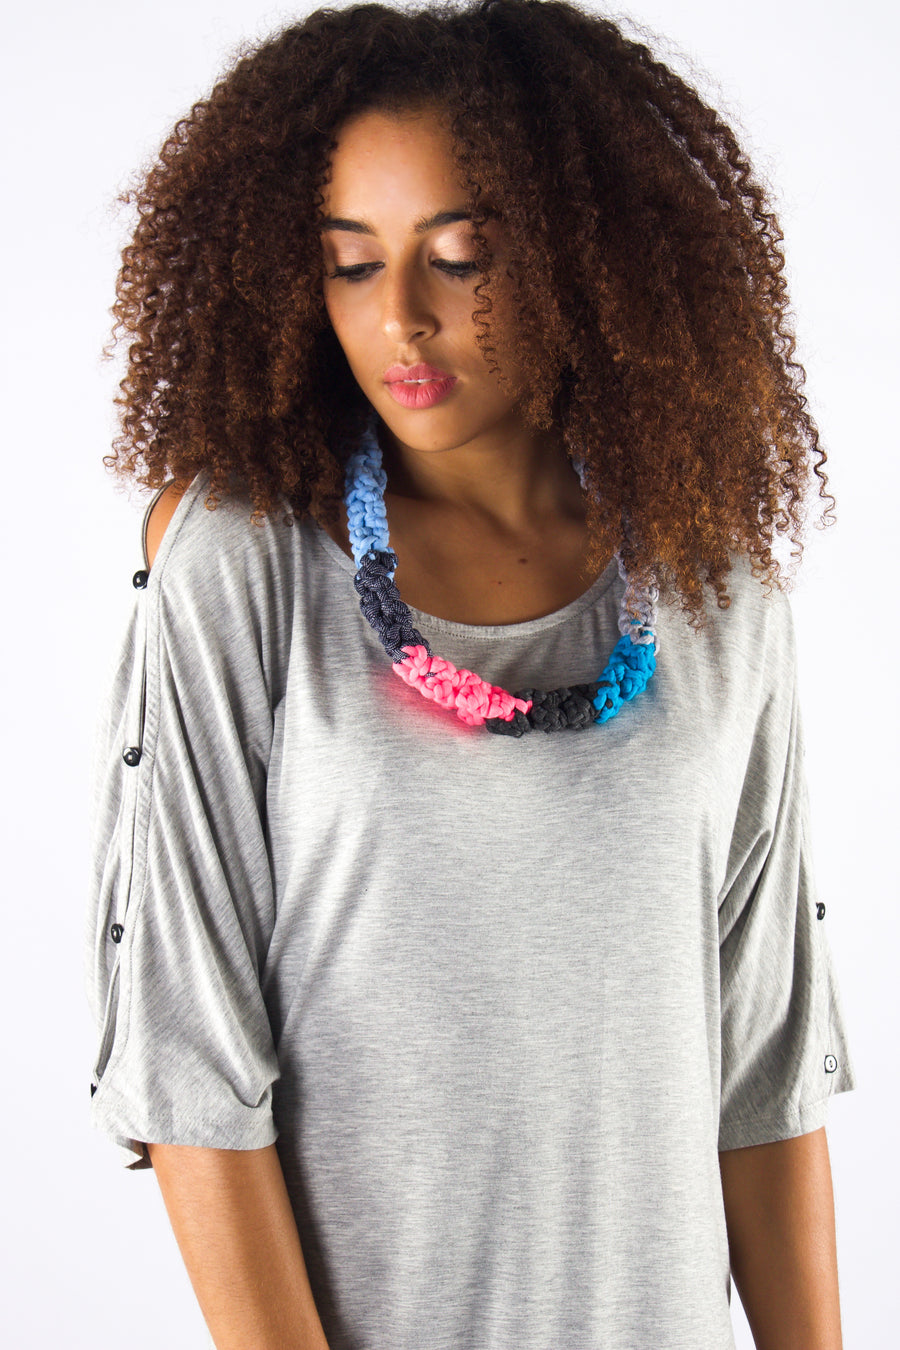 Taikensonzai upcycled yarn Zainara necklace, available exclusively on ZERRIN